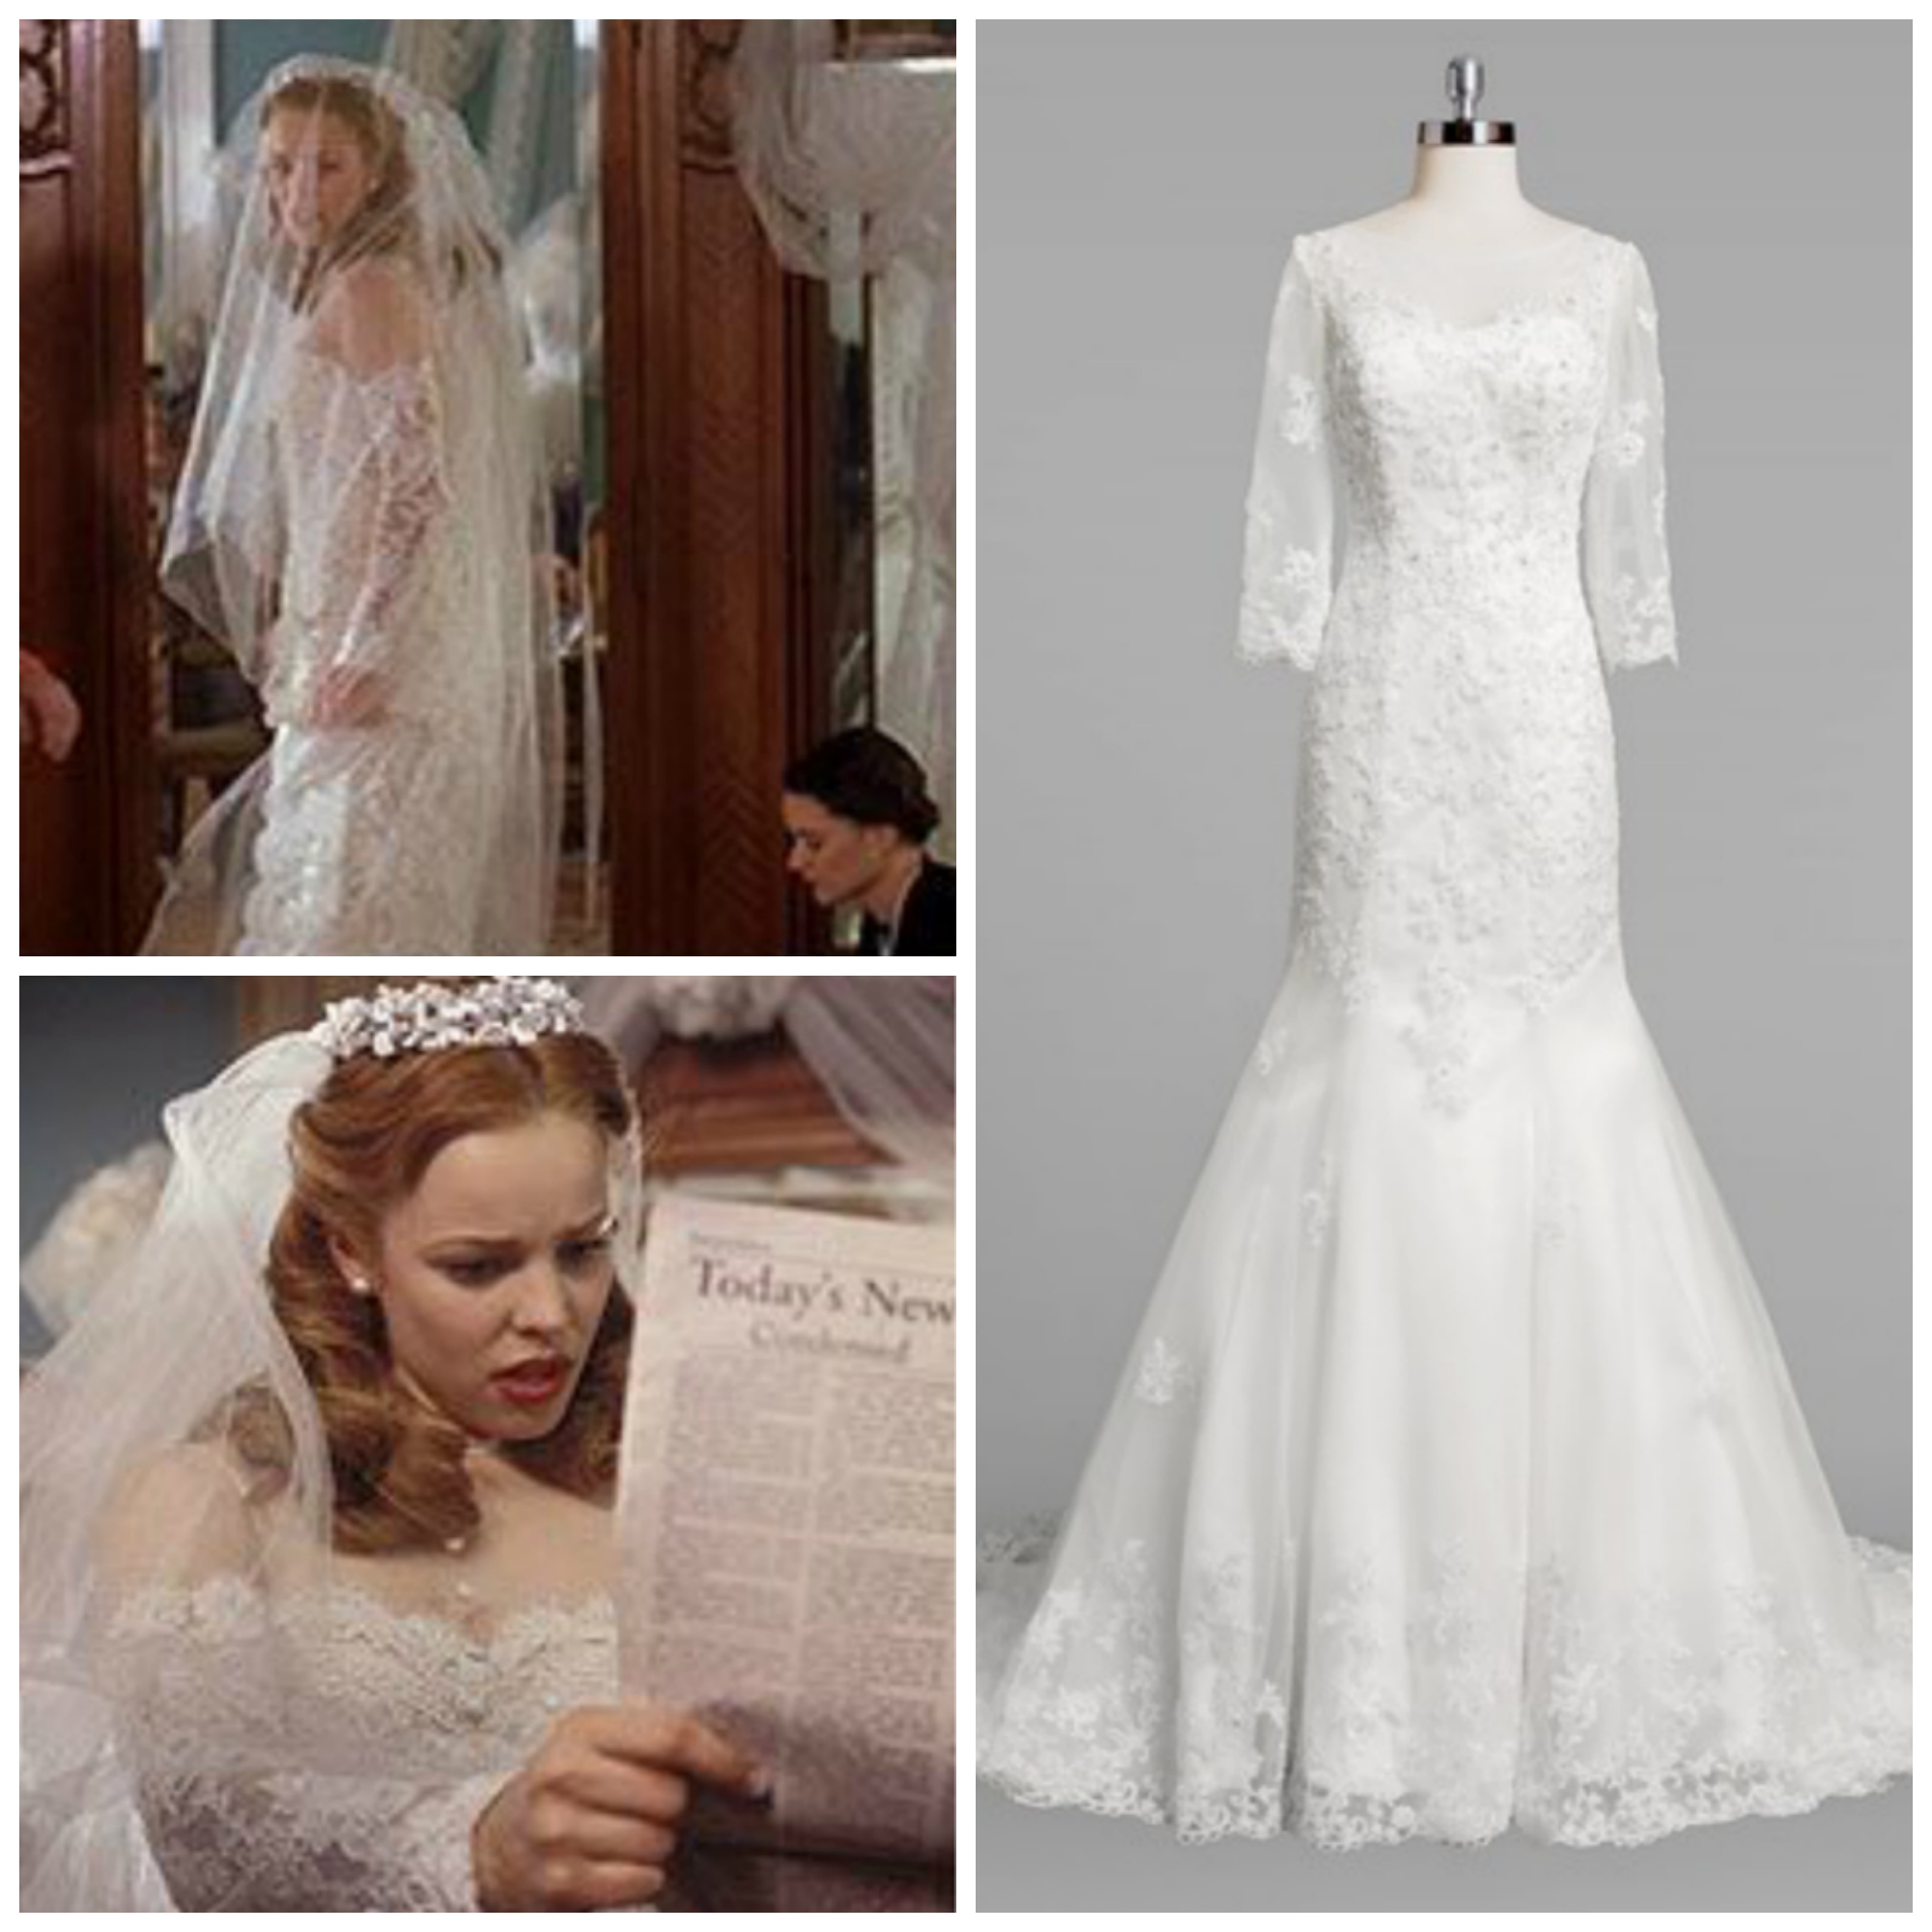 5 Iconic Dresses In The Movies Azazie Blog